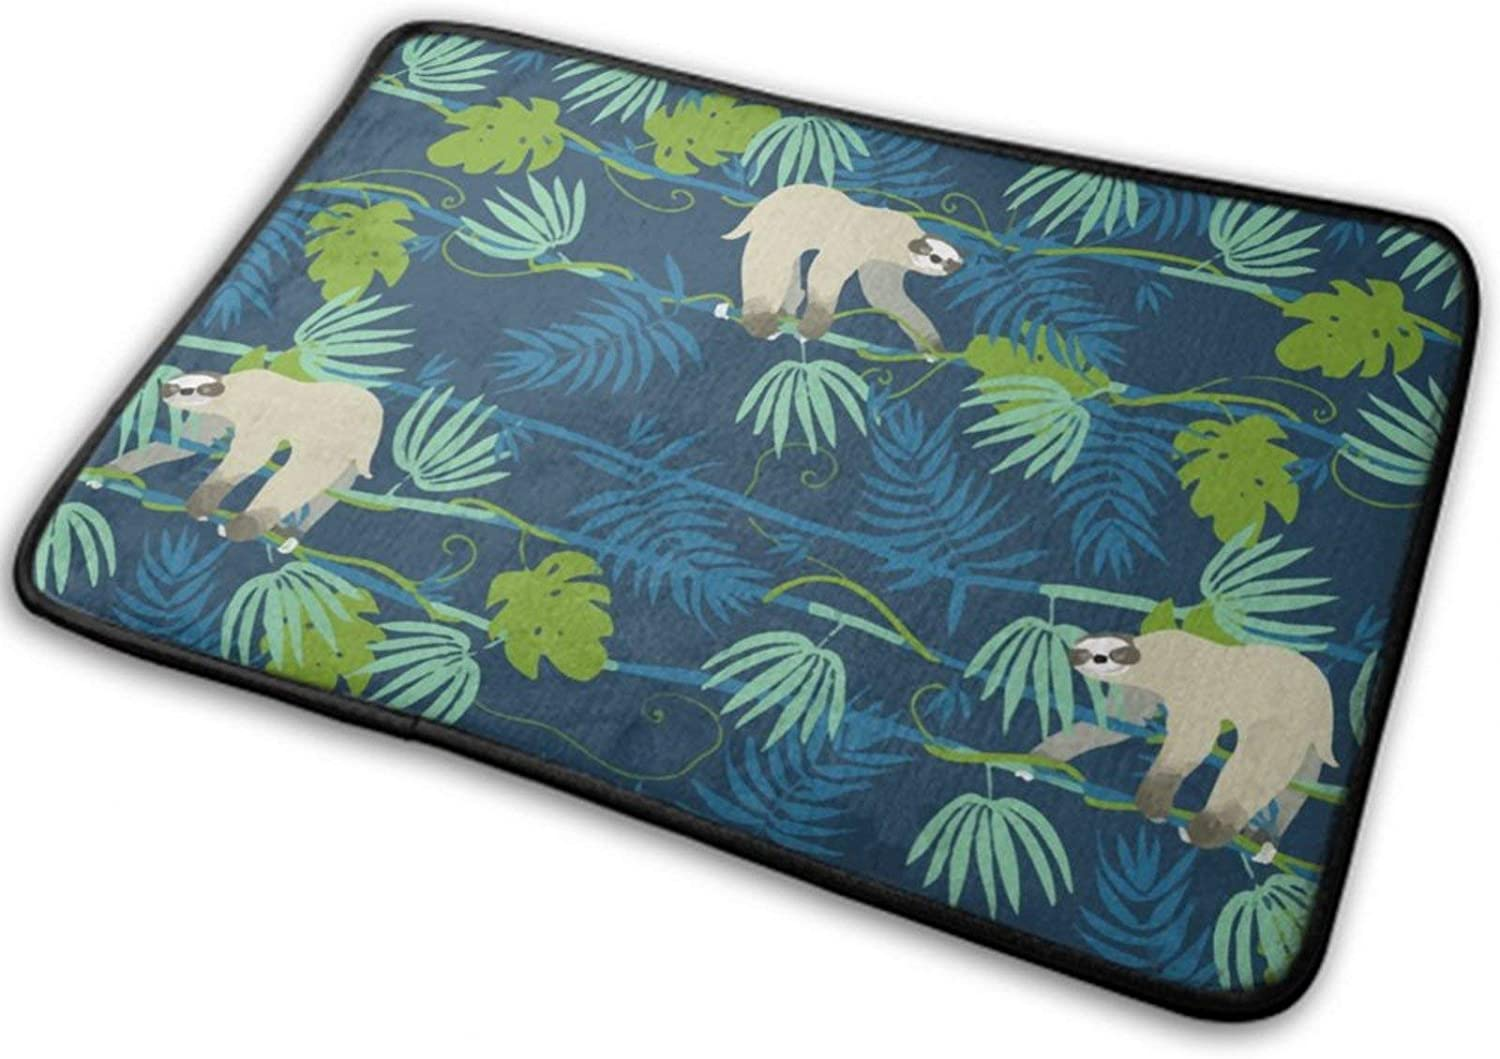 Soft Shaggy Bath Rugs Area Rug Mats Super Water Absorbent Non-Slip Doormat Carpet Mats for Tub, Shower, Bathroom 23.6 x 15.8 Inch, Sloth on The Tree Tropical Palm Leaves